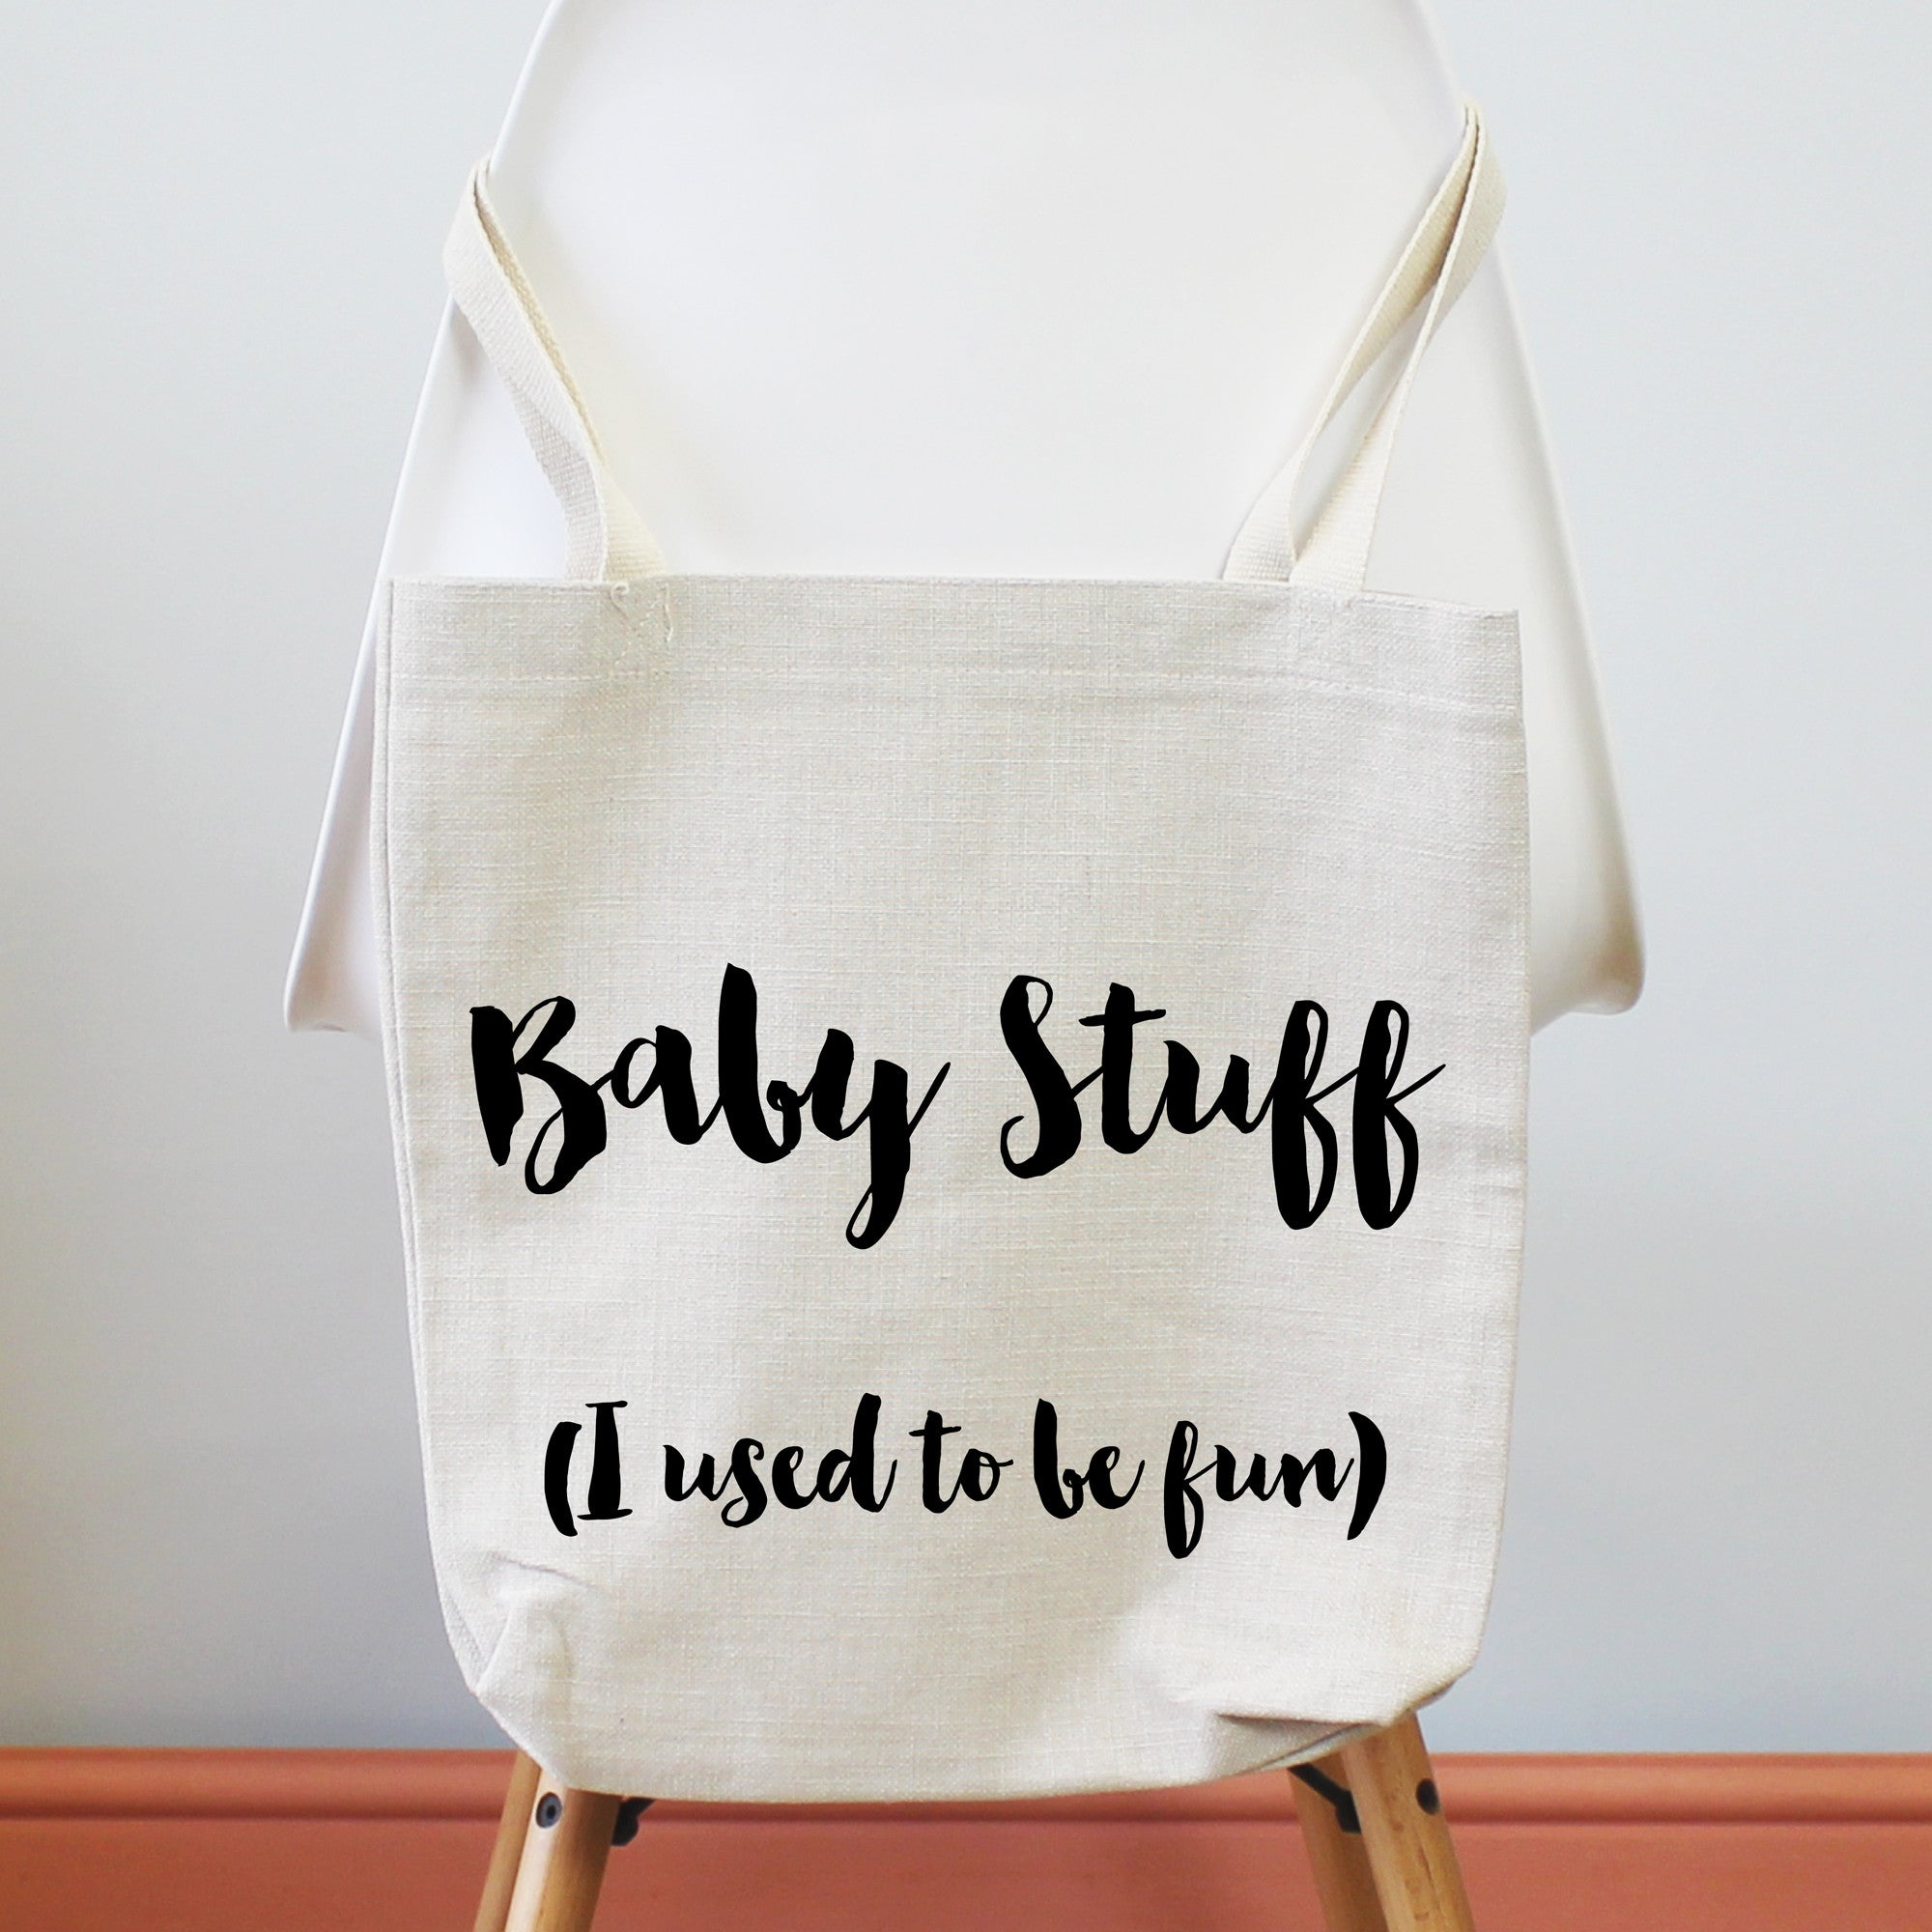 Baby Stuff, I Used To Be Fun Tote Shopping Bag